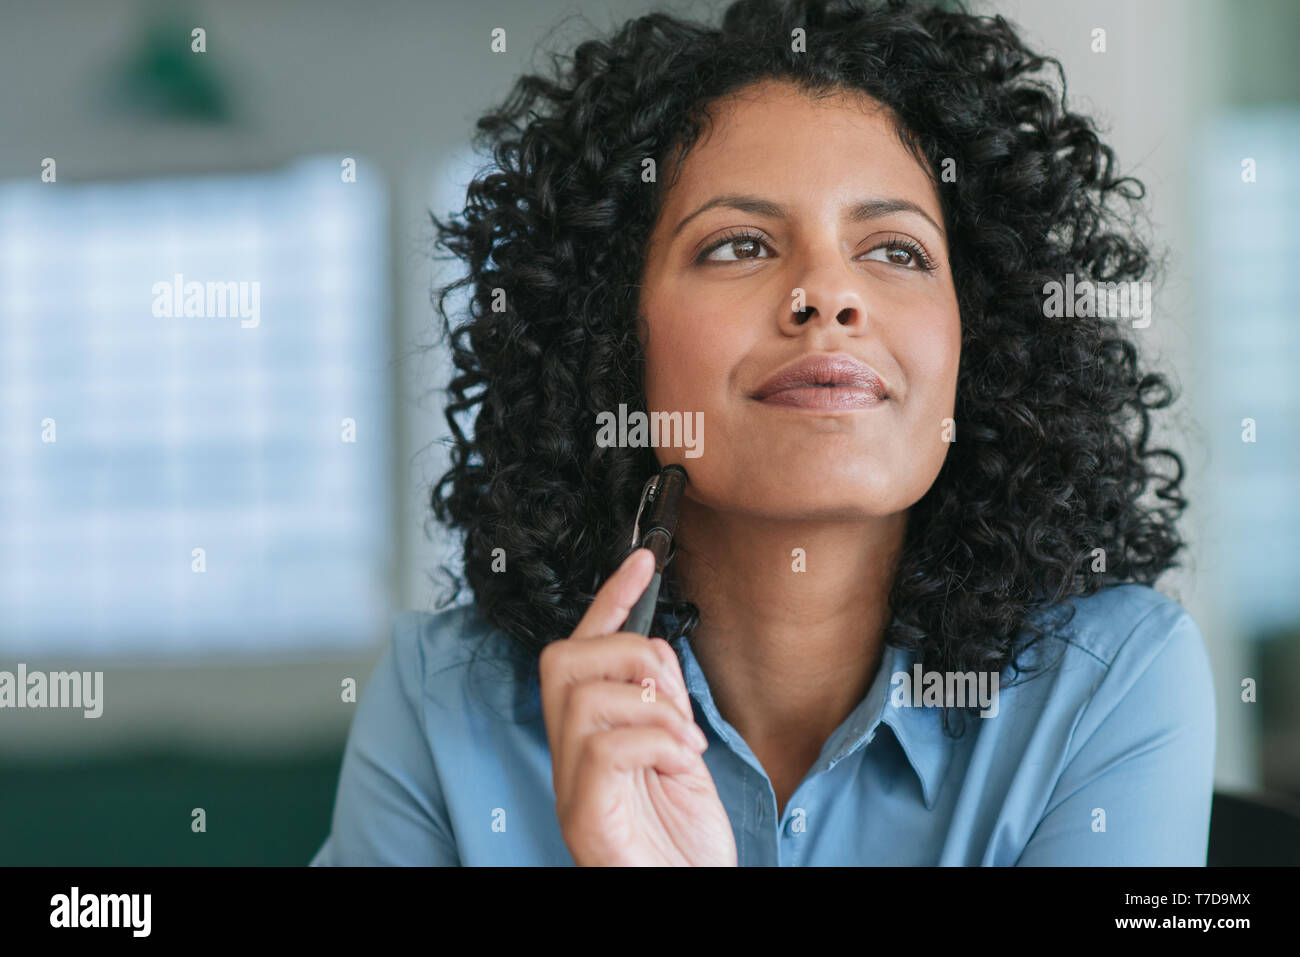 Smiling young businesswoman with a vision for her company - Stock Image